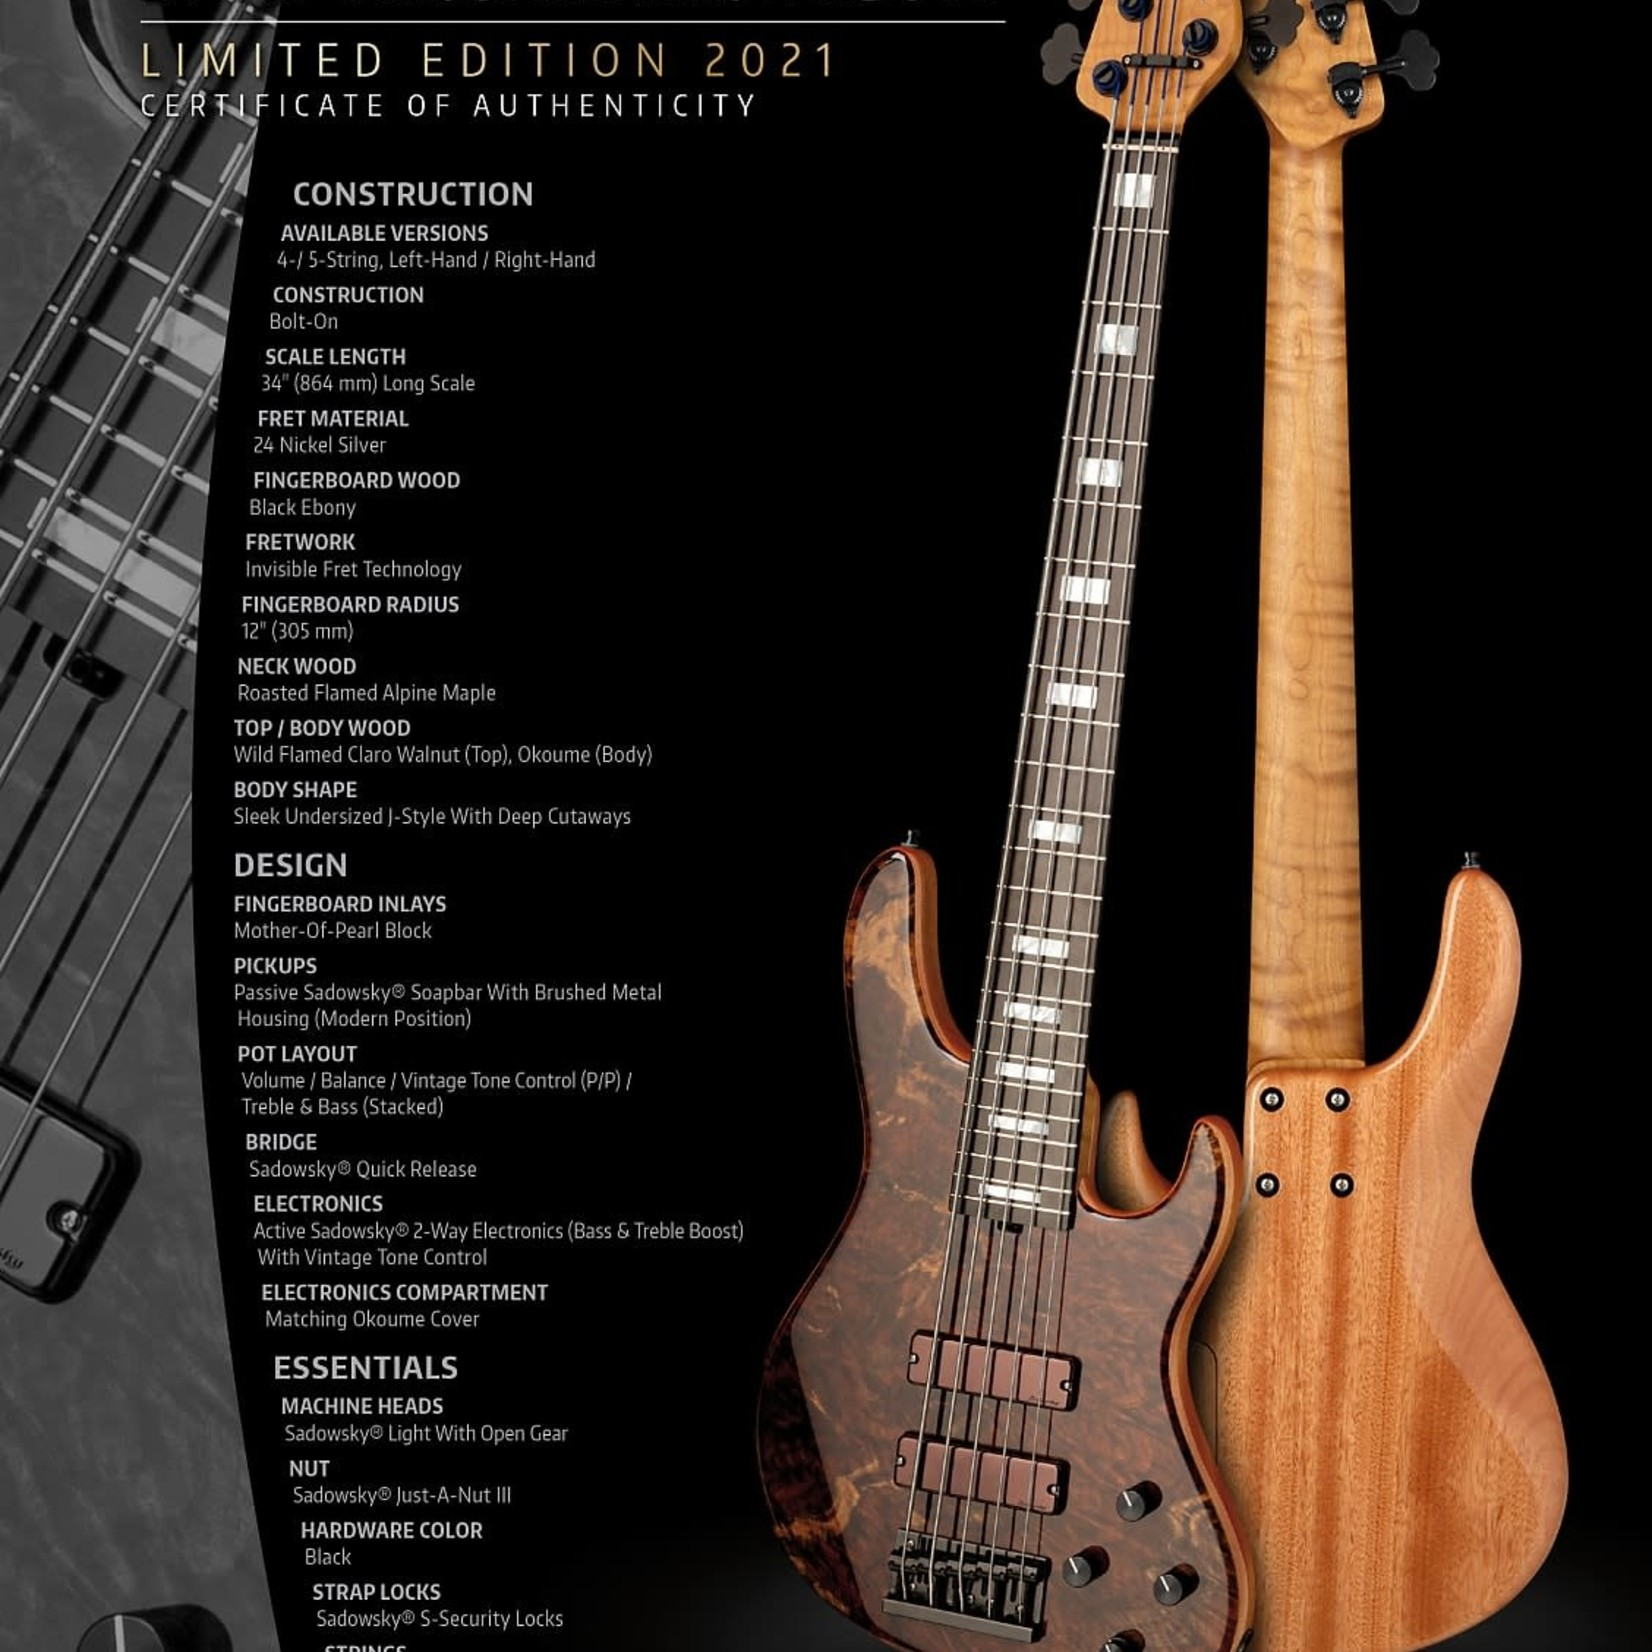 Sadowsky Sadowsky Masterbuilt 2021 LTD 24-Fret Modern, 30 Worldwide, 4-String, Wild Flame Claro Walnut Top, Okume Body, Roasted Flame Alpine Maple Neck, Mother Of Pearl Block Inlays, Black Ebony Fretboard, Passive Sadowsky Soapbar Pickups with Brushed Metal Housin